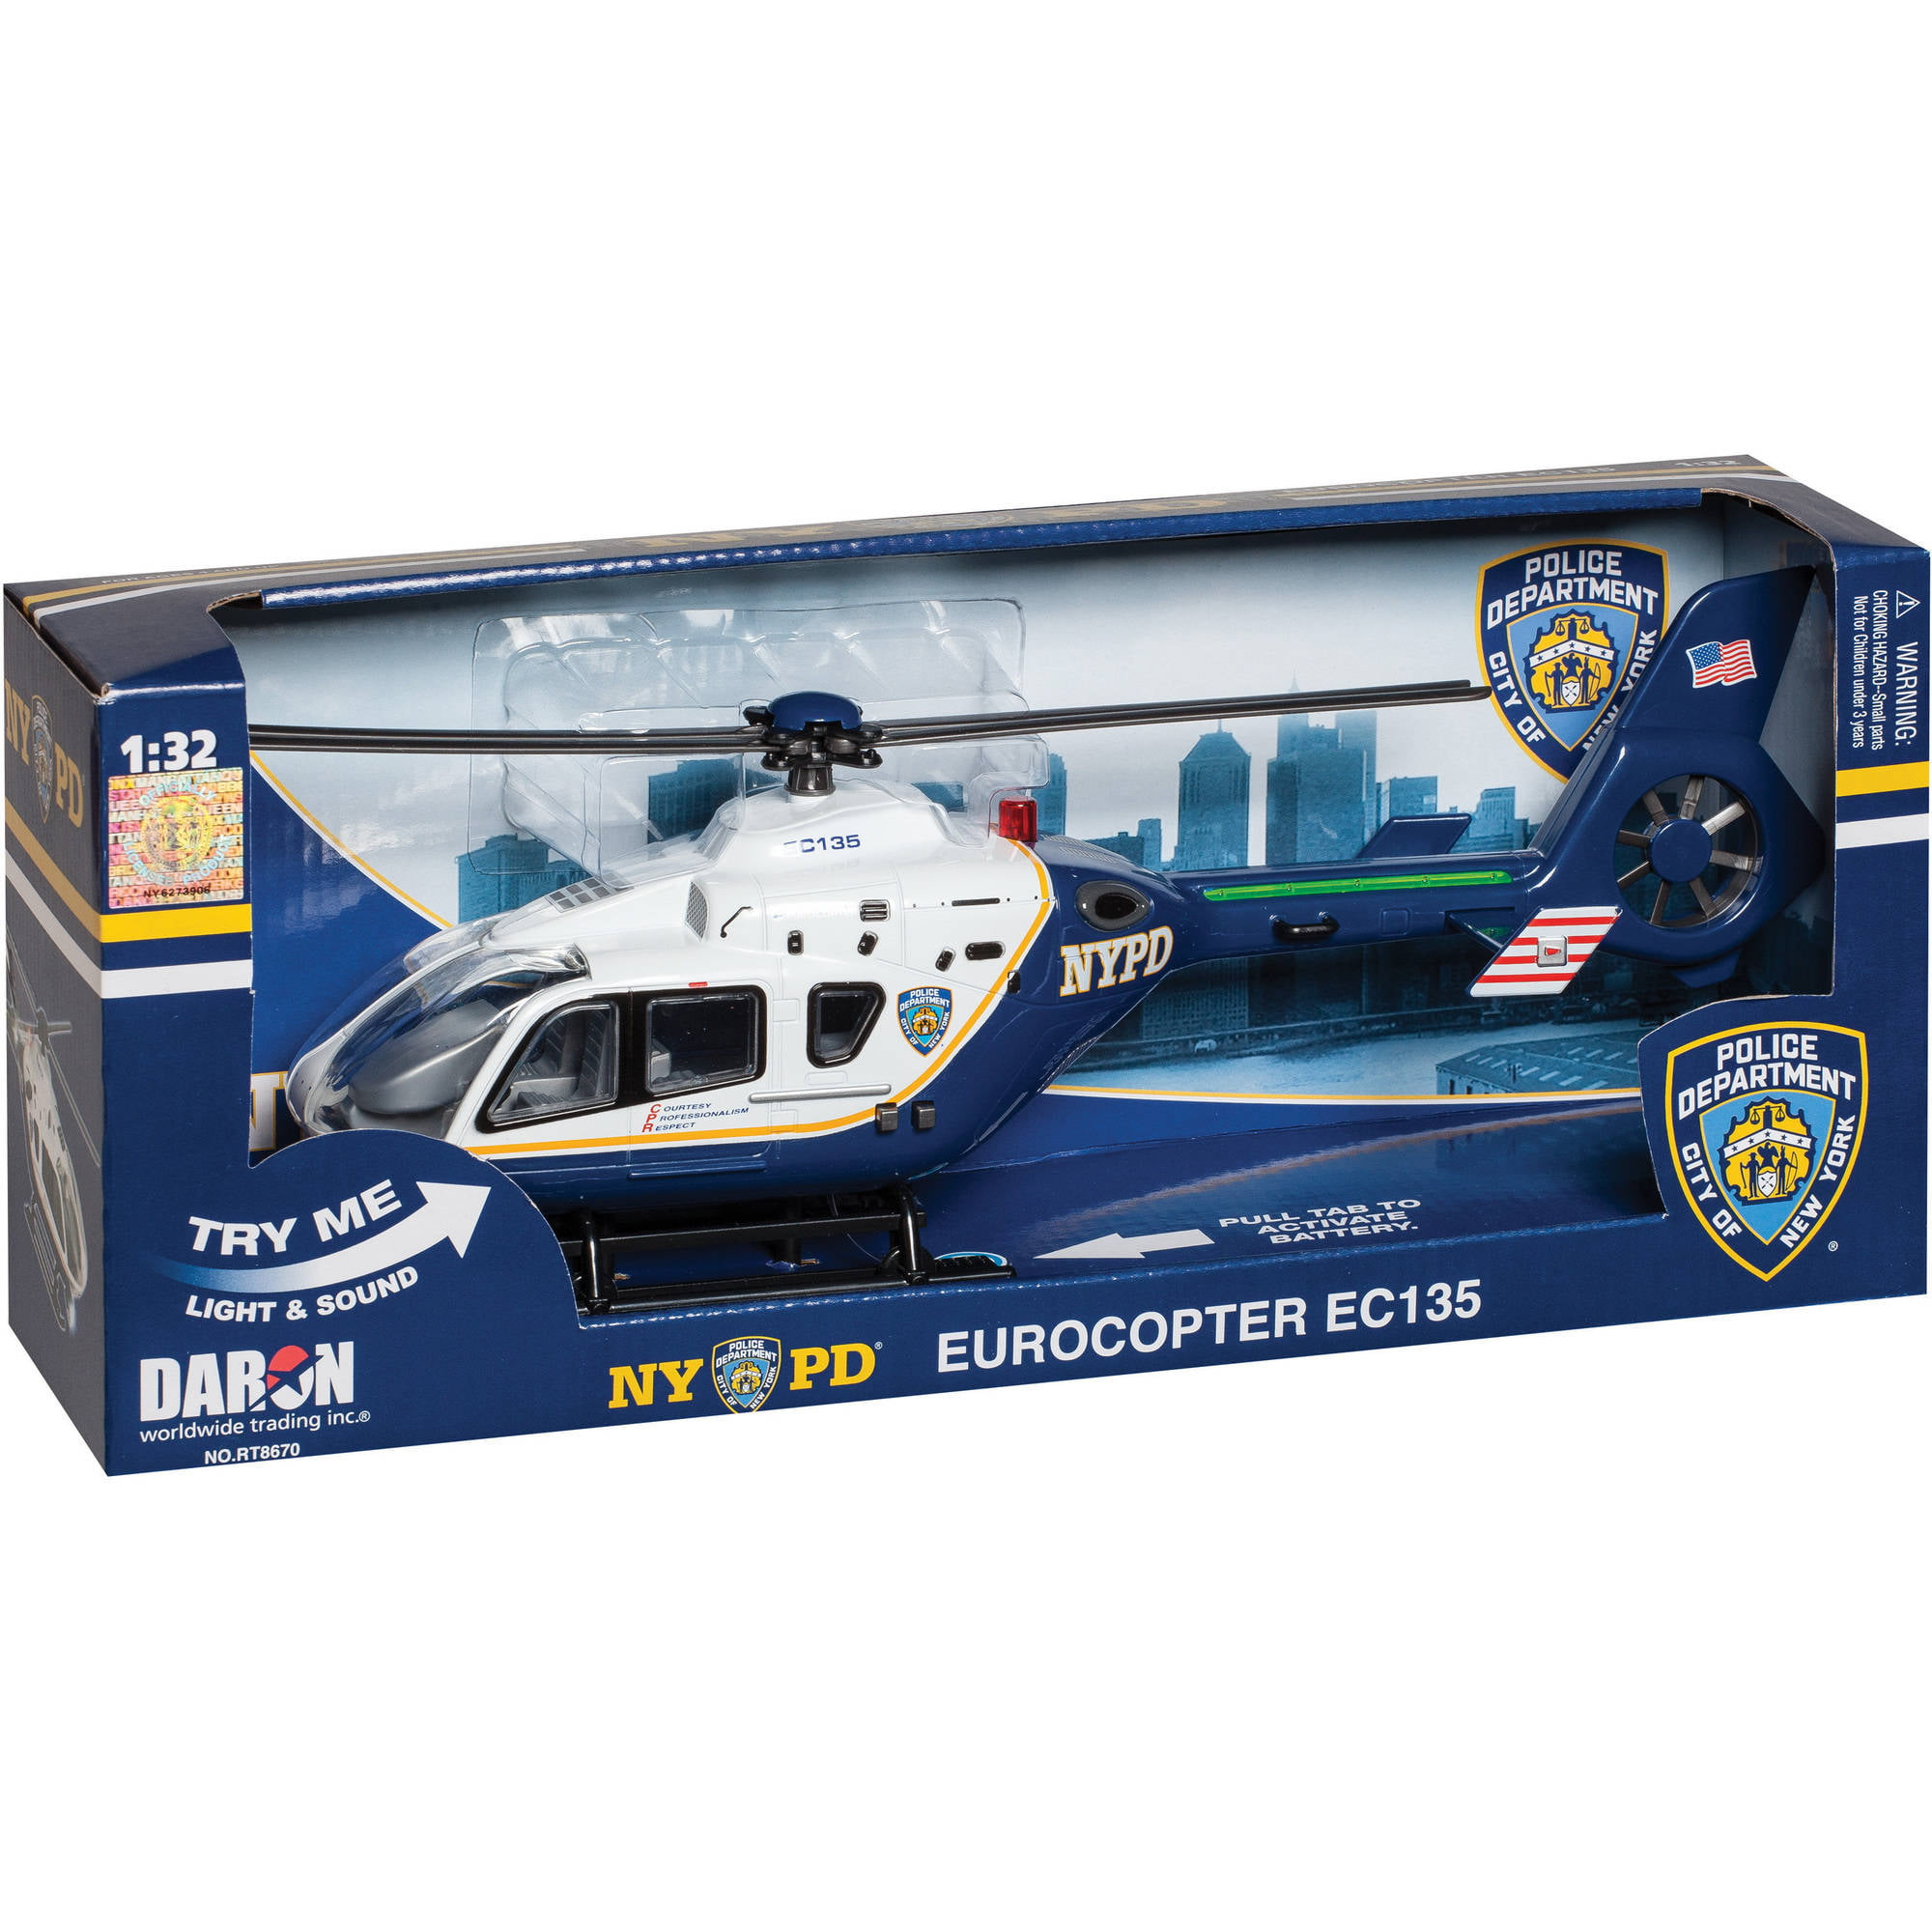 Daron Police Department City of New York Helicopter with Lights and Sound (NYPD) by Daron